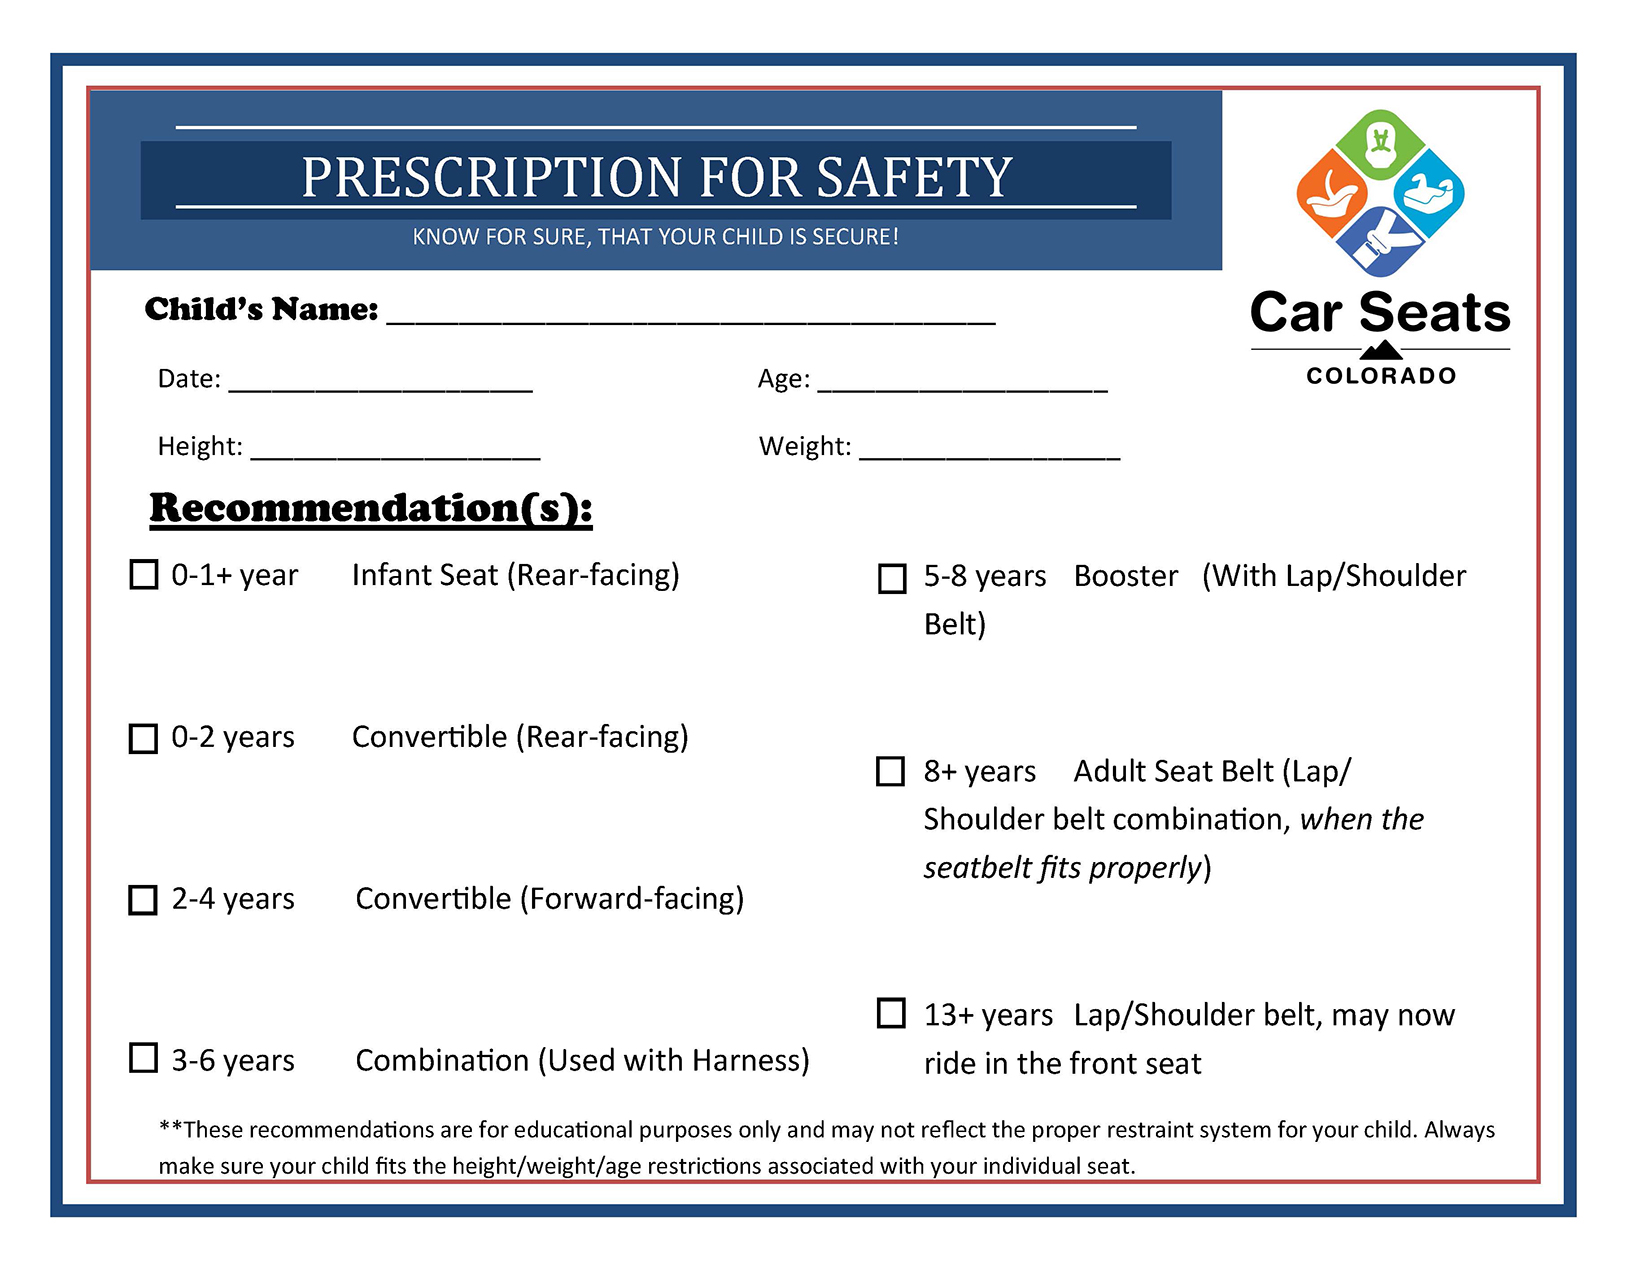 Prescription Child Safety Card